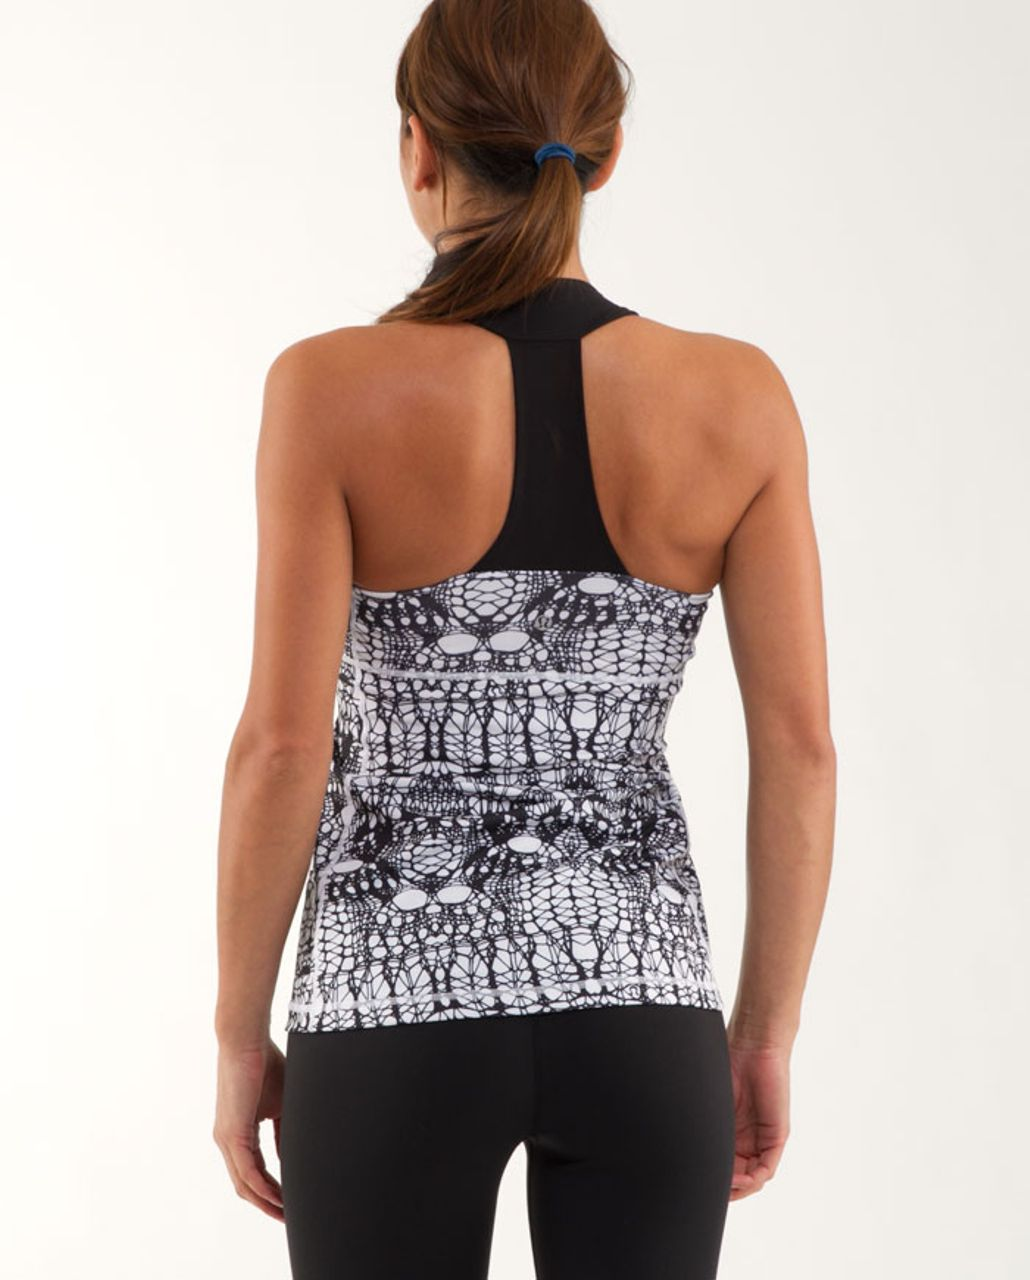 Lululemon Scoop Neck Tank - White Black Glacier Lace /  Black